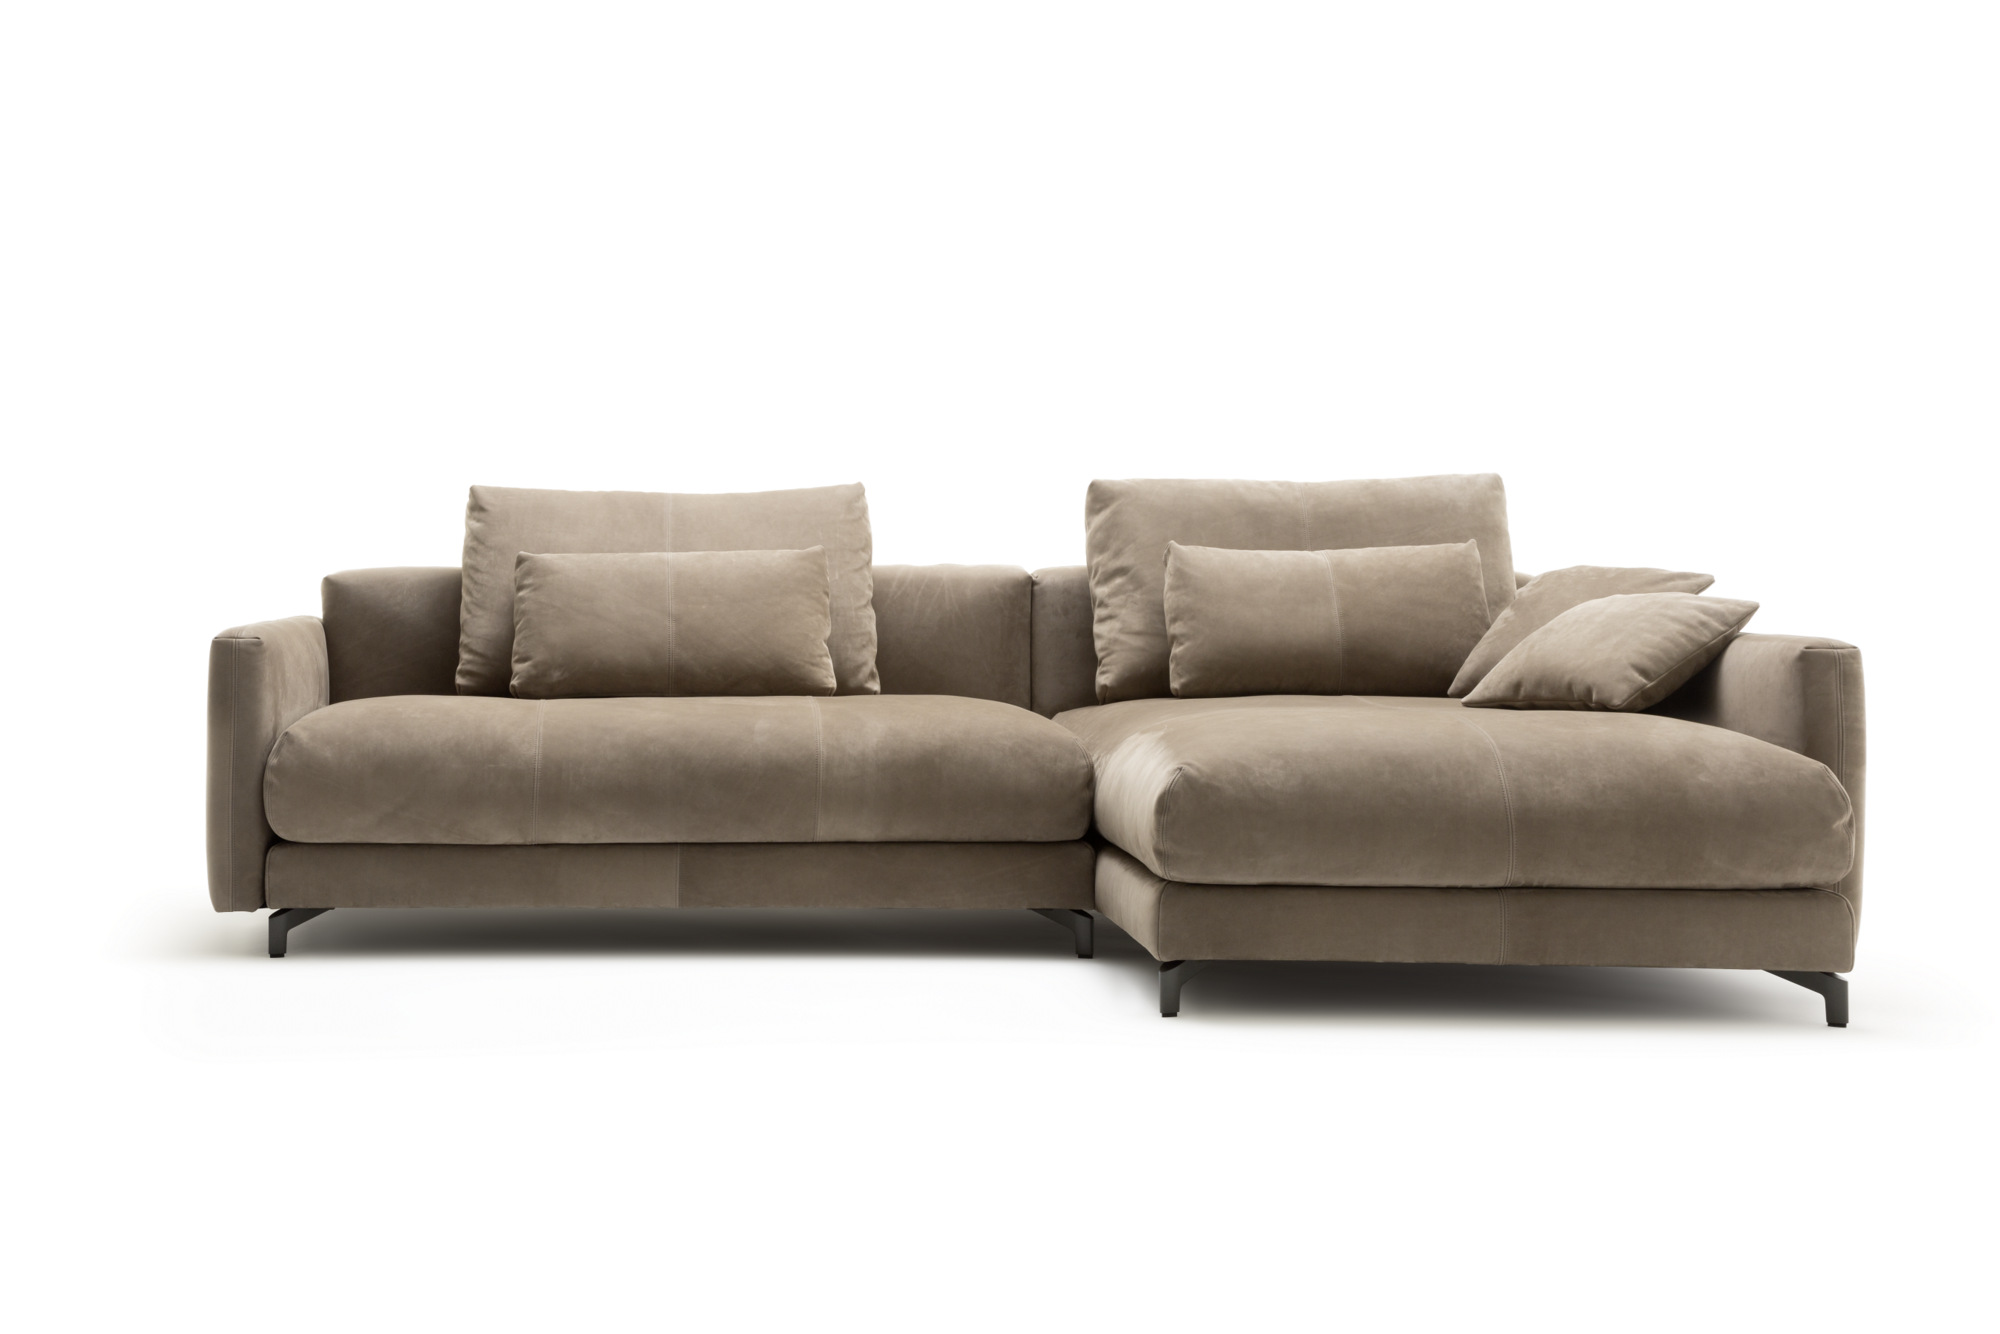 Sectional leather sofa with chaise longue nuvola sofa for Chaise longue style sofa